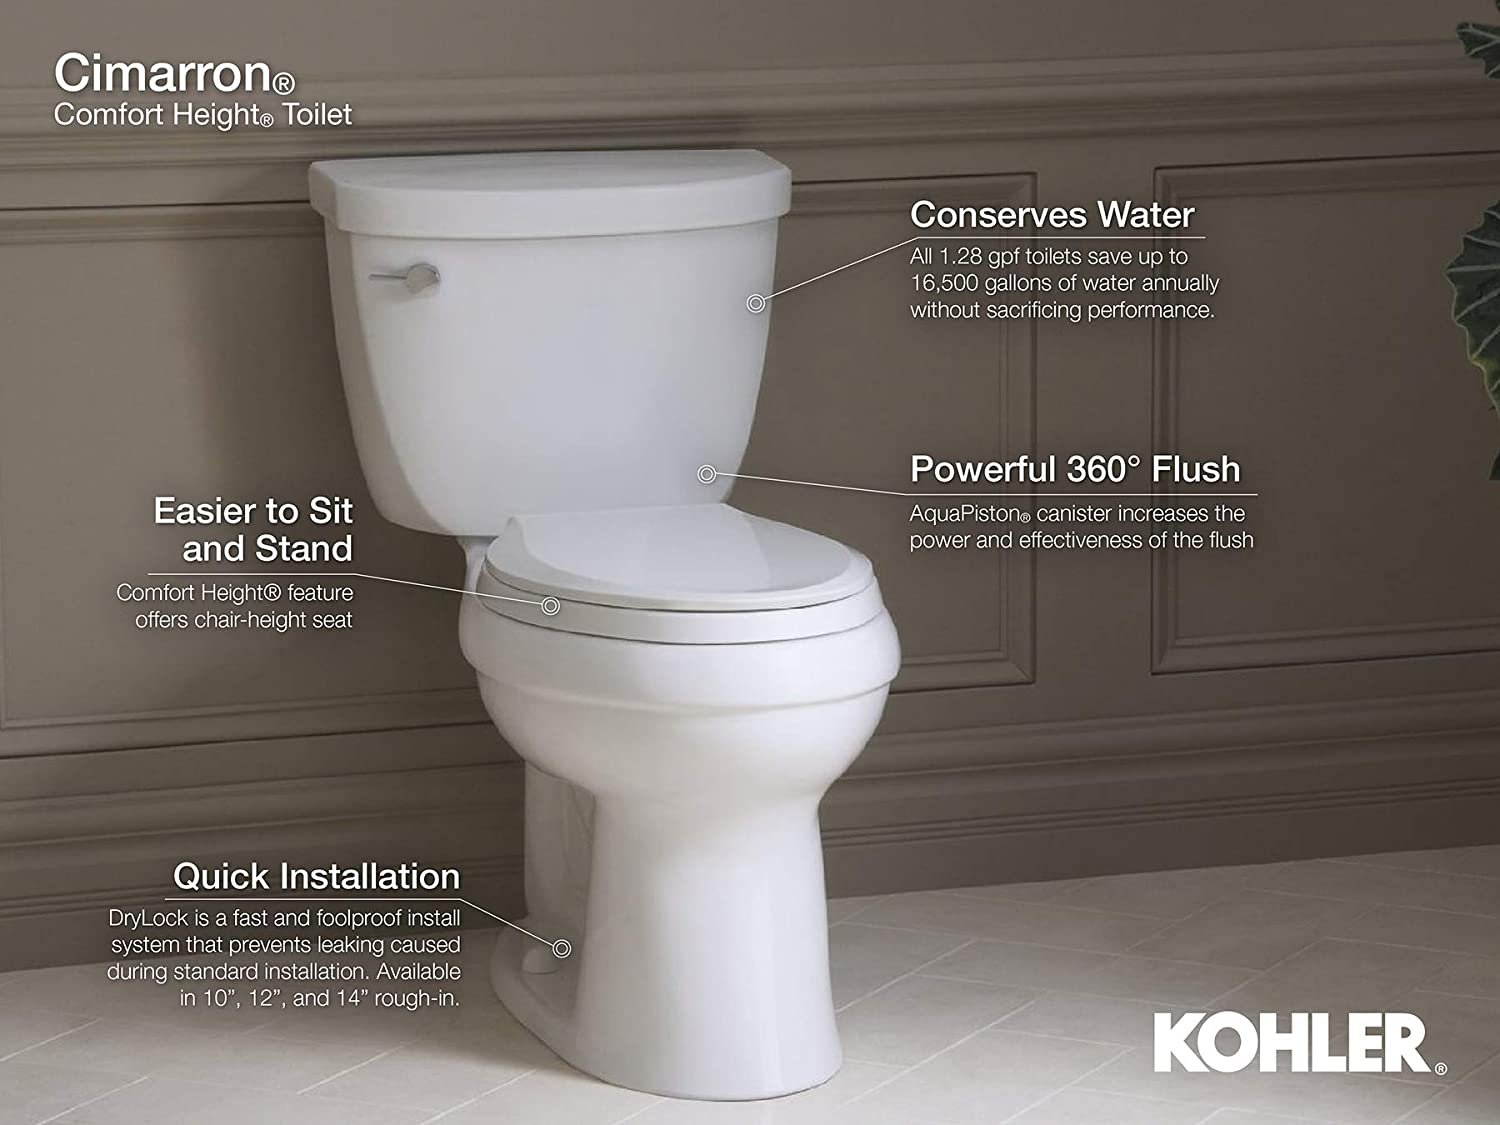 Kohler K 3851 0 Cimarron Comfort Height Two Piece Round Front 1 28 Gpf Toilet With Aqua Piston Flush Technology 10 Inch Rough In And Left Hand Trip Lever White Two Piece Toilets Amazon Com